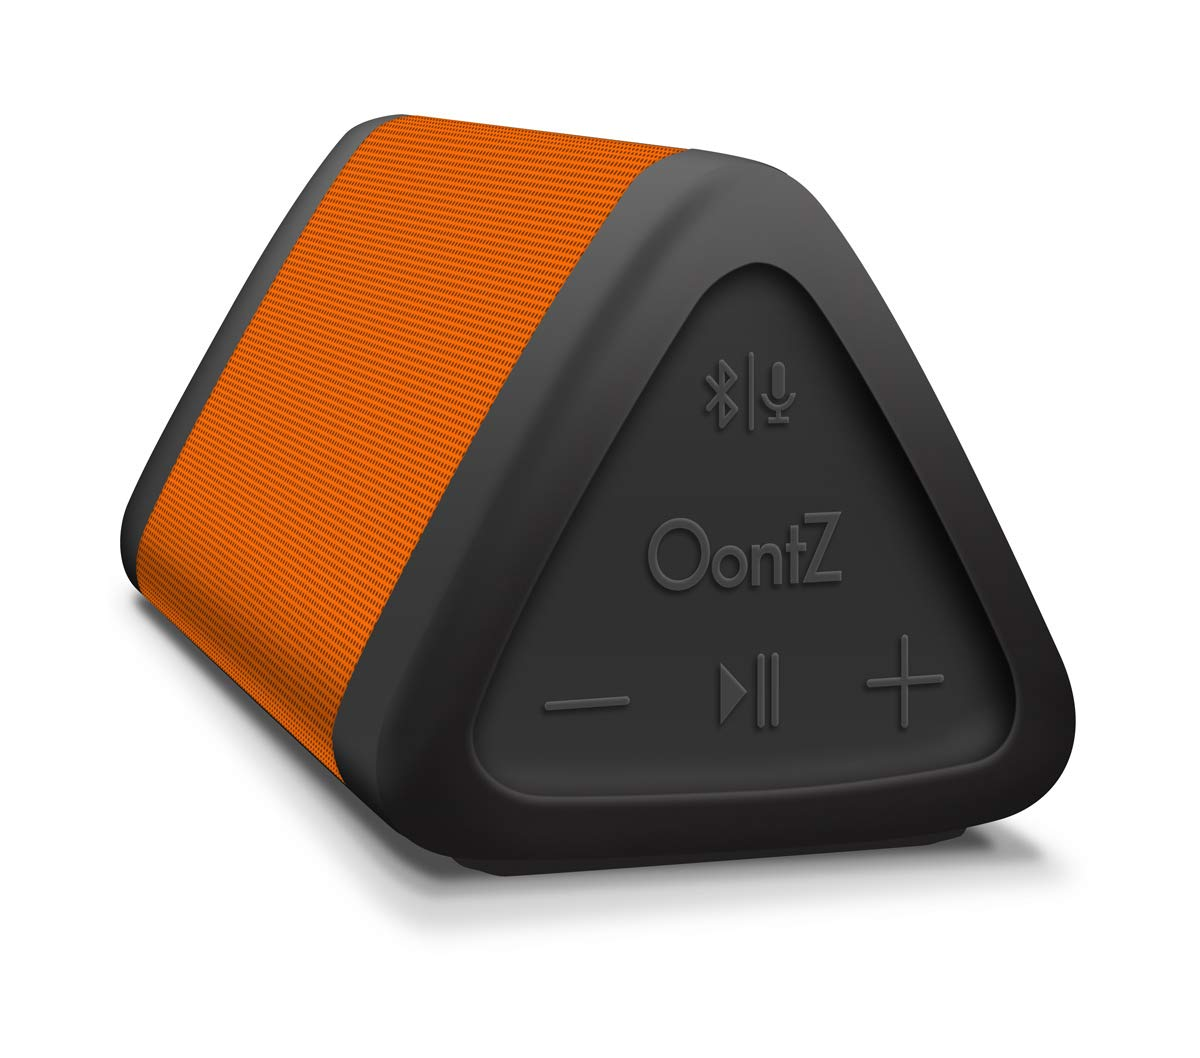 OontZ Angle 3 (3rd Gen) Portable Bluetooth Speaker, Louder Crystal Clear Stereo Sound, Rich Bass, 100 Ft Wireless Speaker Range, IPX5, Bluetooth Speakers by Cambridge SoundWorks (Orange) by Cambridge Soundworks (Image #7)